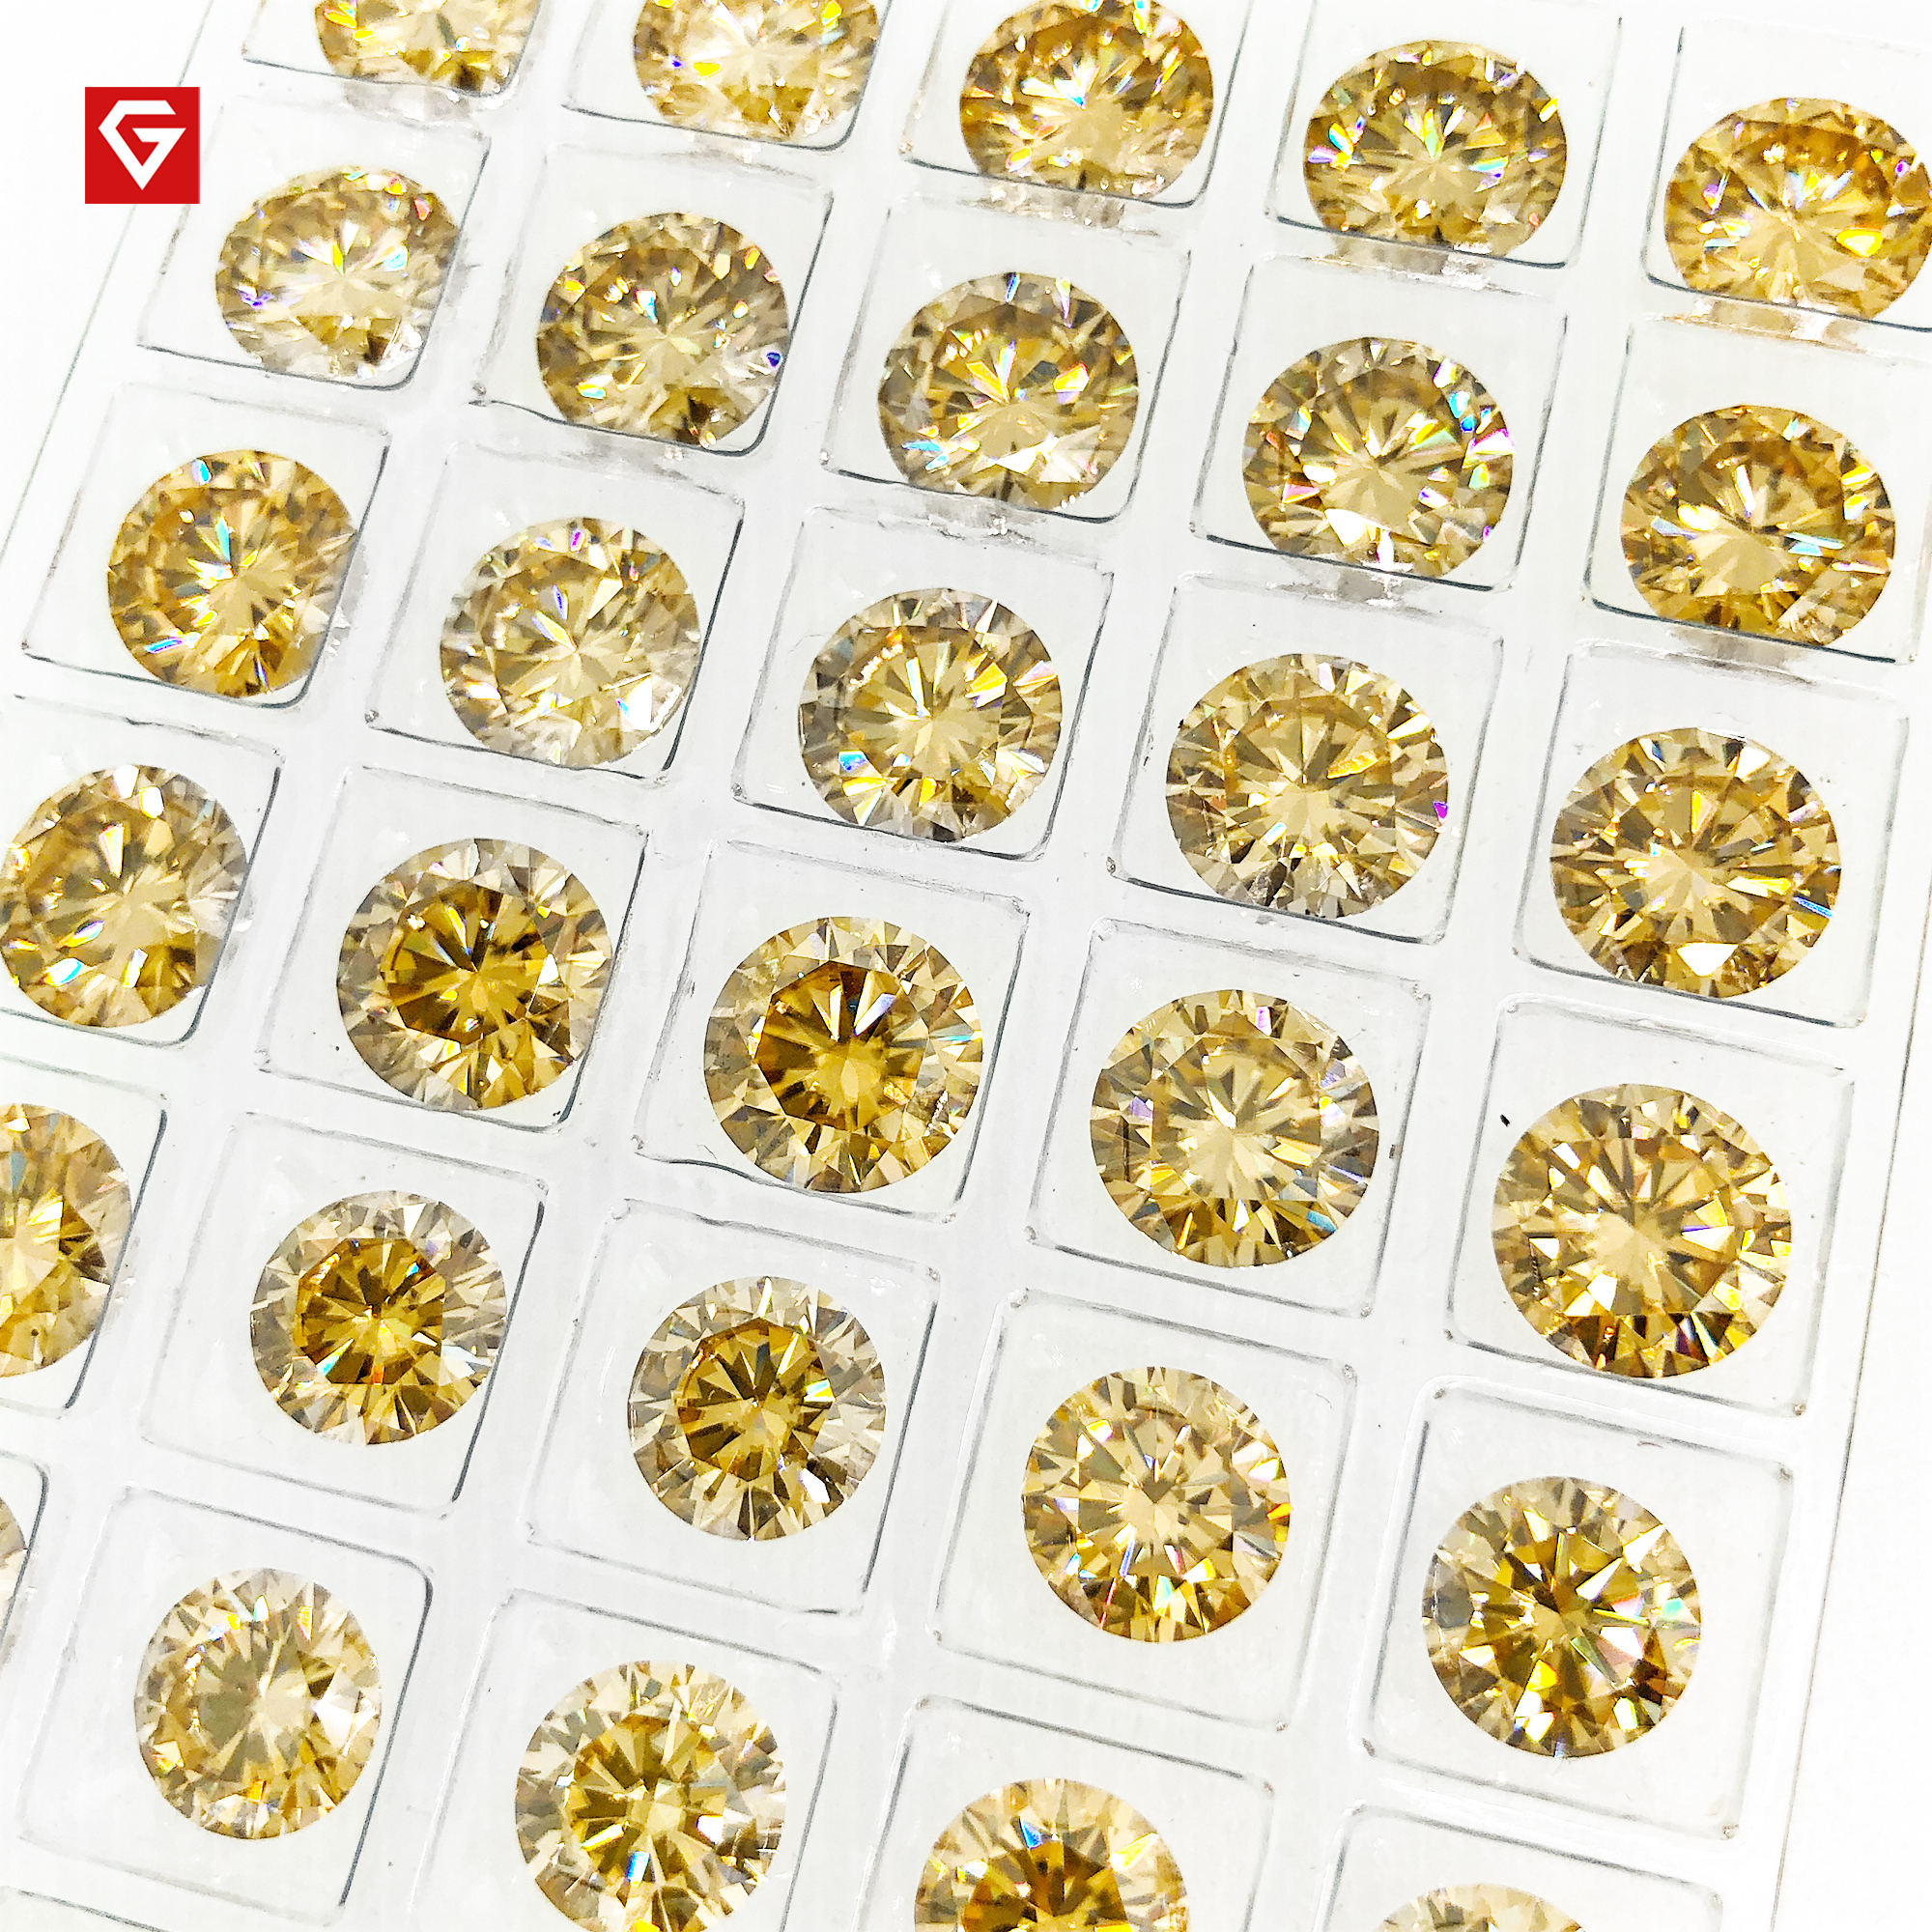 GIGAJEWE Wholesales Loose 6.5mm 2ct Round Cut Champagne Yellow Colored For Making Jewelry Moissanite Diamonds